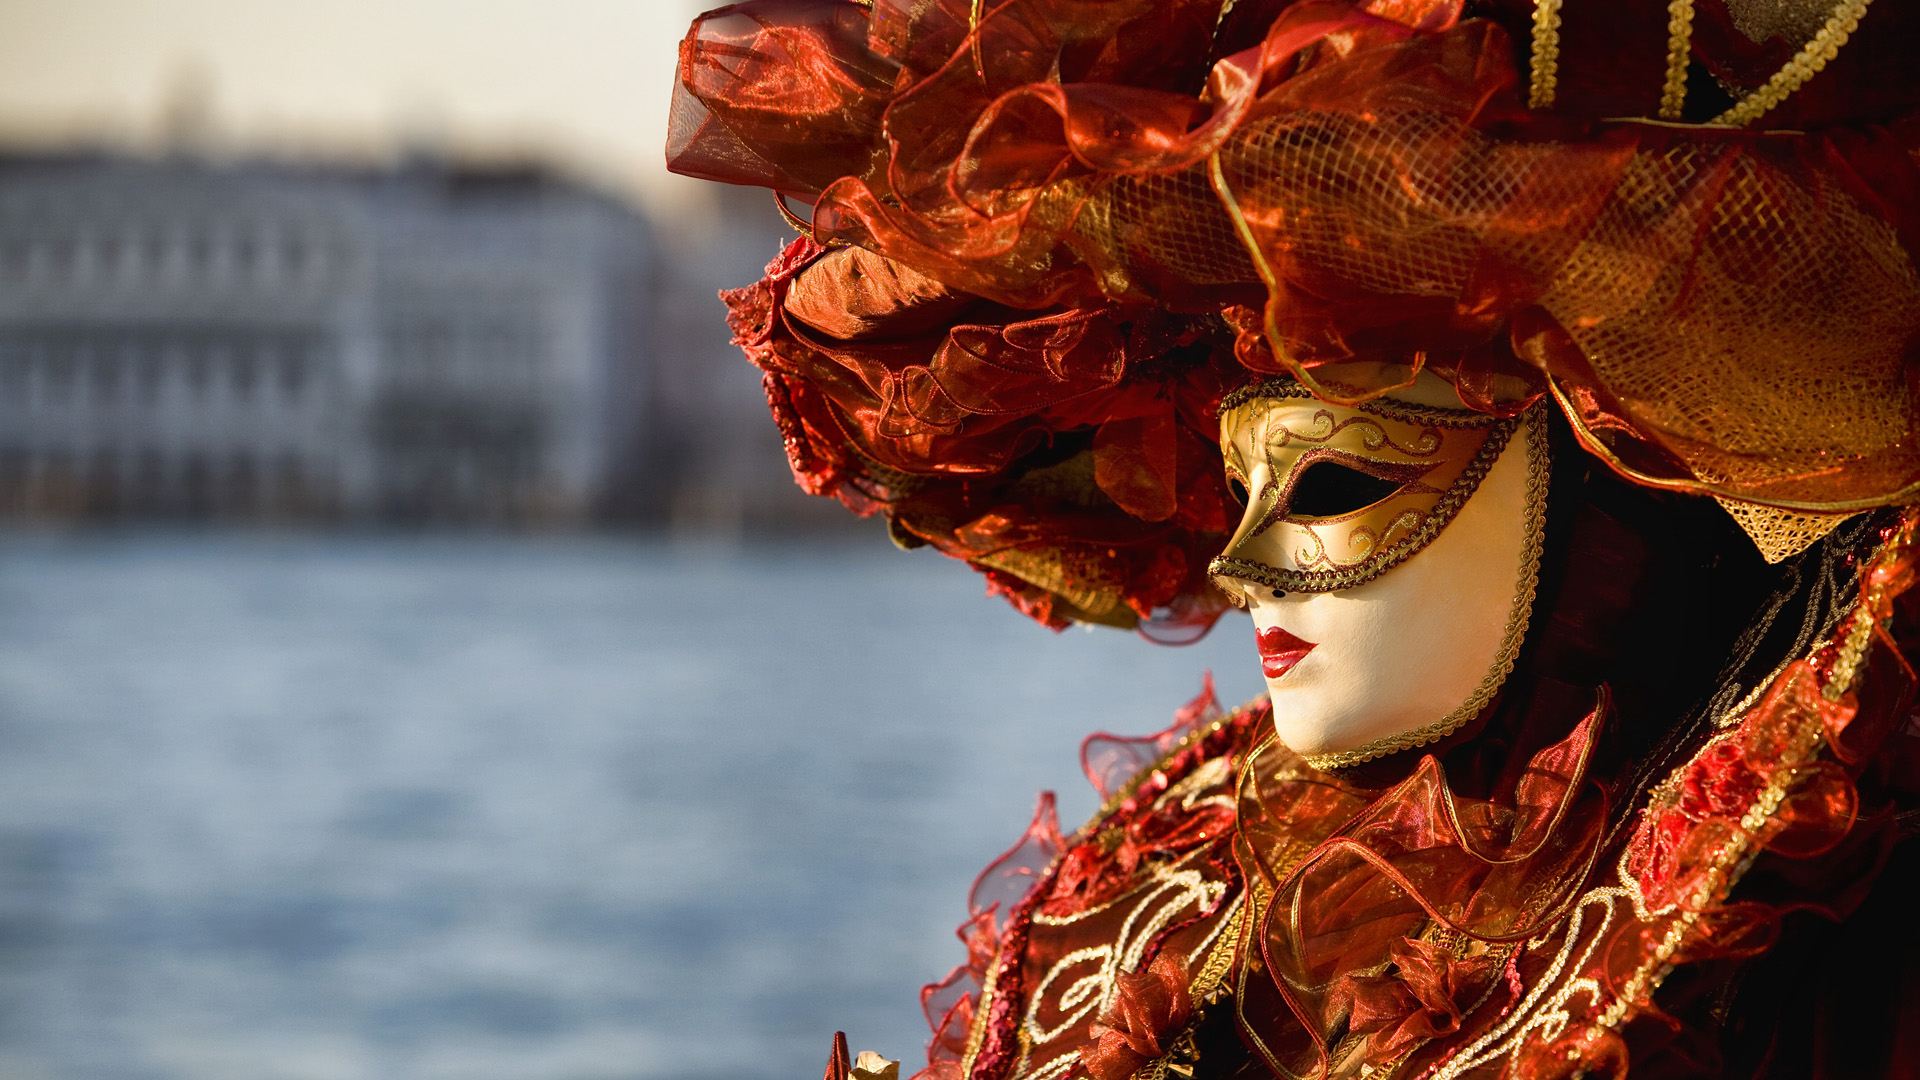 Woman wearing Carnival mask and costume by water